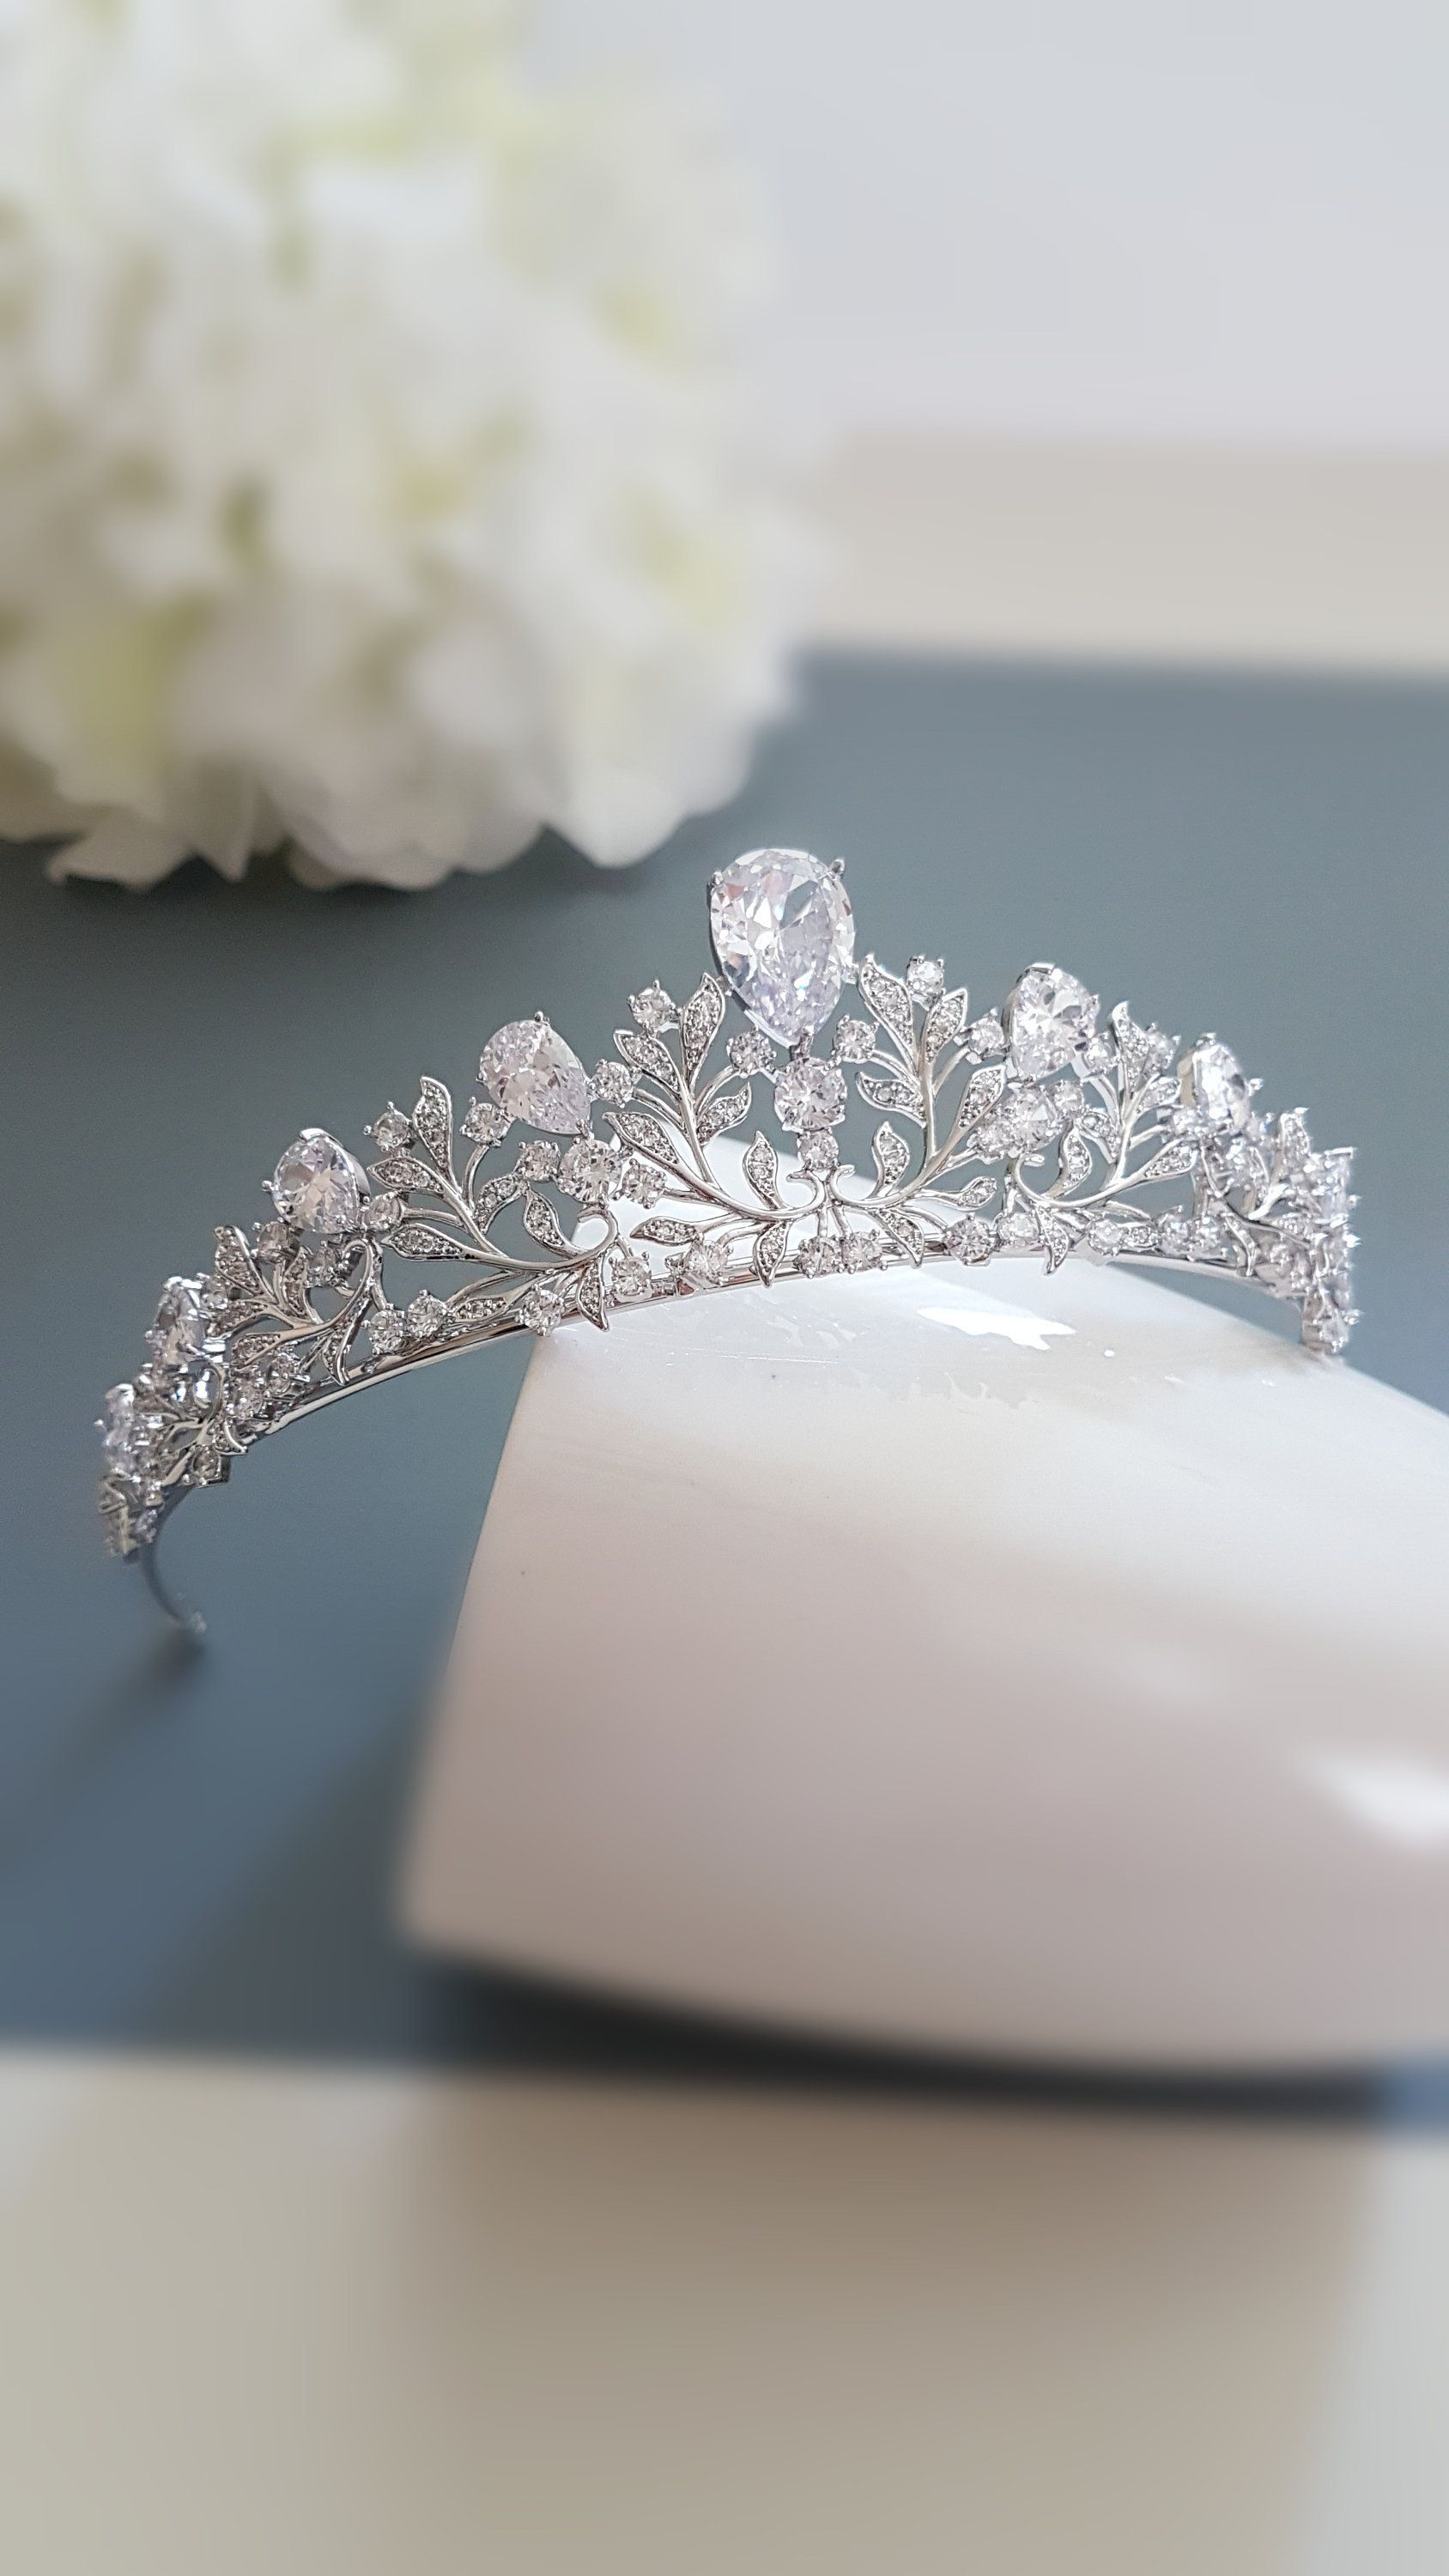 Bridal Hair Jewelry Wedding Tiara Bridal Tiara Crystal Floral Tiara Crown Silver Wedding Swarovski Crystal Zircon Bridal Headband Headpiece In 2020 Hair Jewelry Wedding Bridal Tiara Wedding Tiara